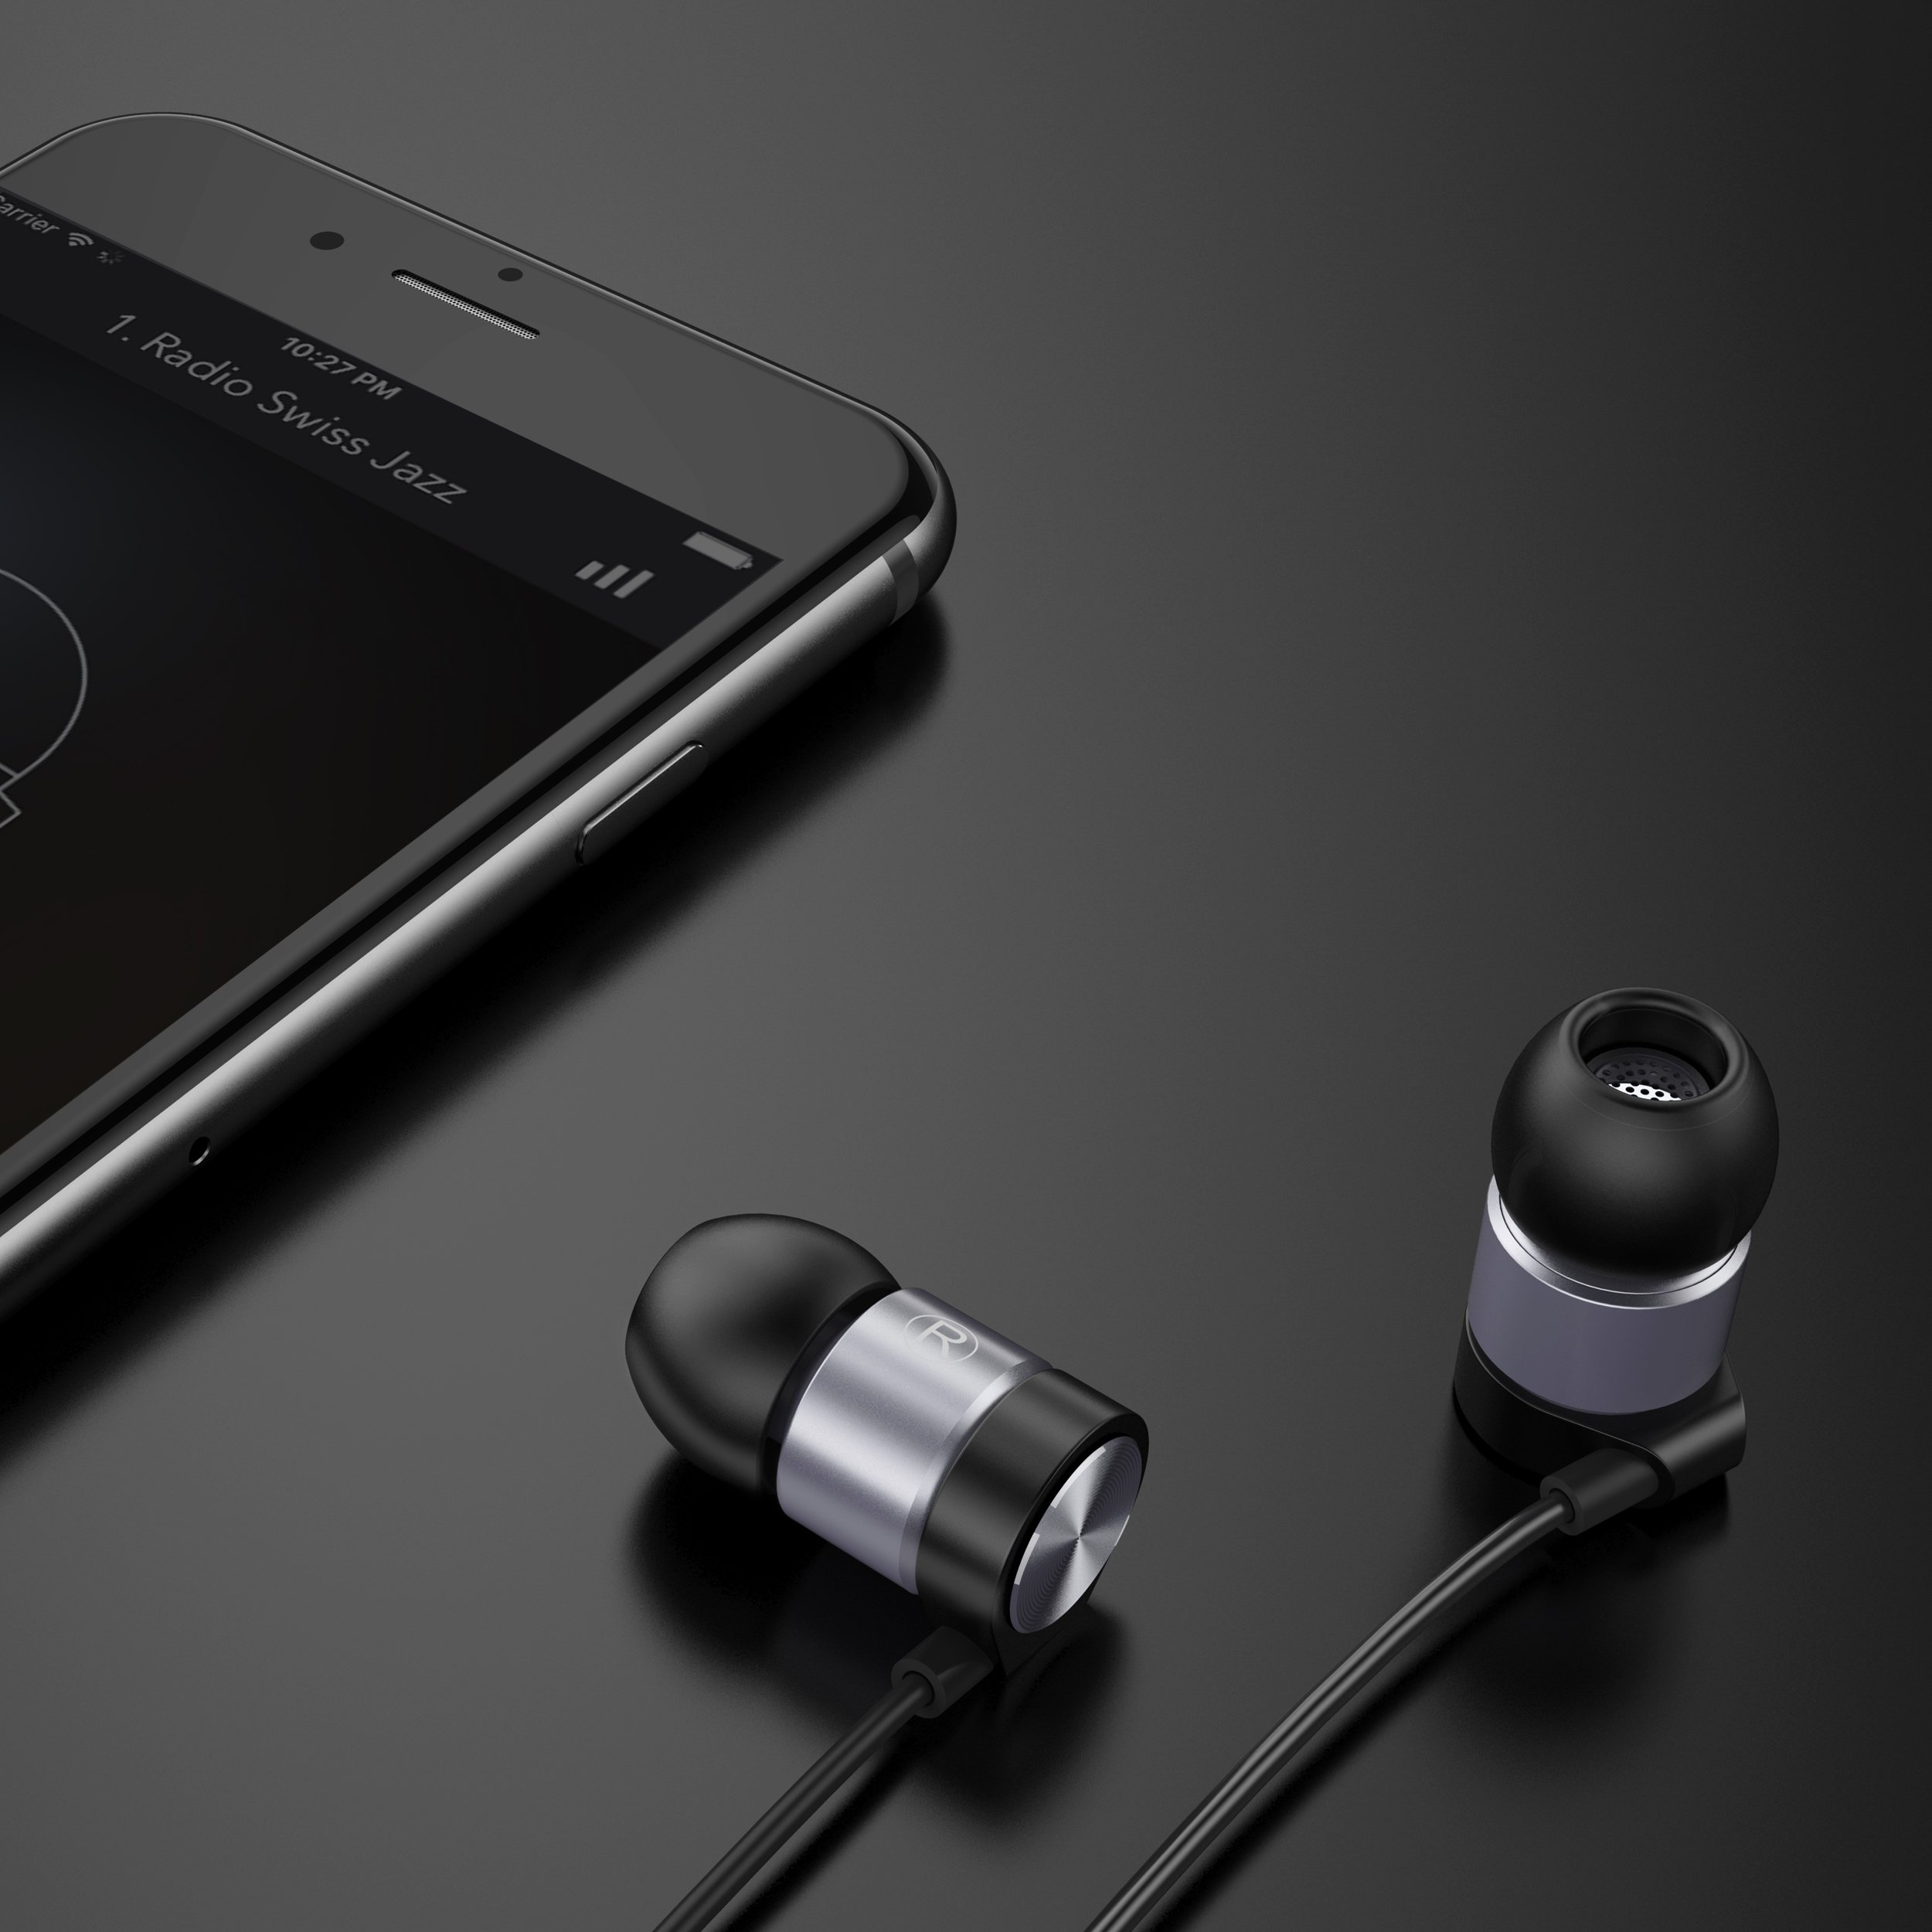 In Ear Headphones Maxtronic Metasonics Earbud with Line-in Microphone Heavy Bass Dynamic Driver Earphones with Non Tangle Fabric Braid For Running Gym iOS Android Phones Music Player iPhone by FEECHAGIER (Image #4)